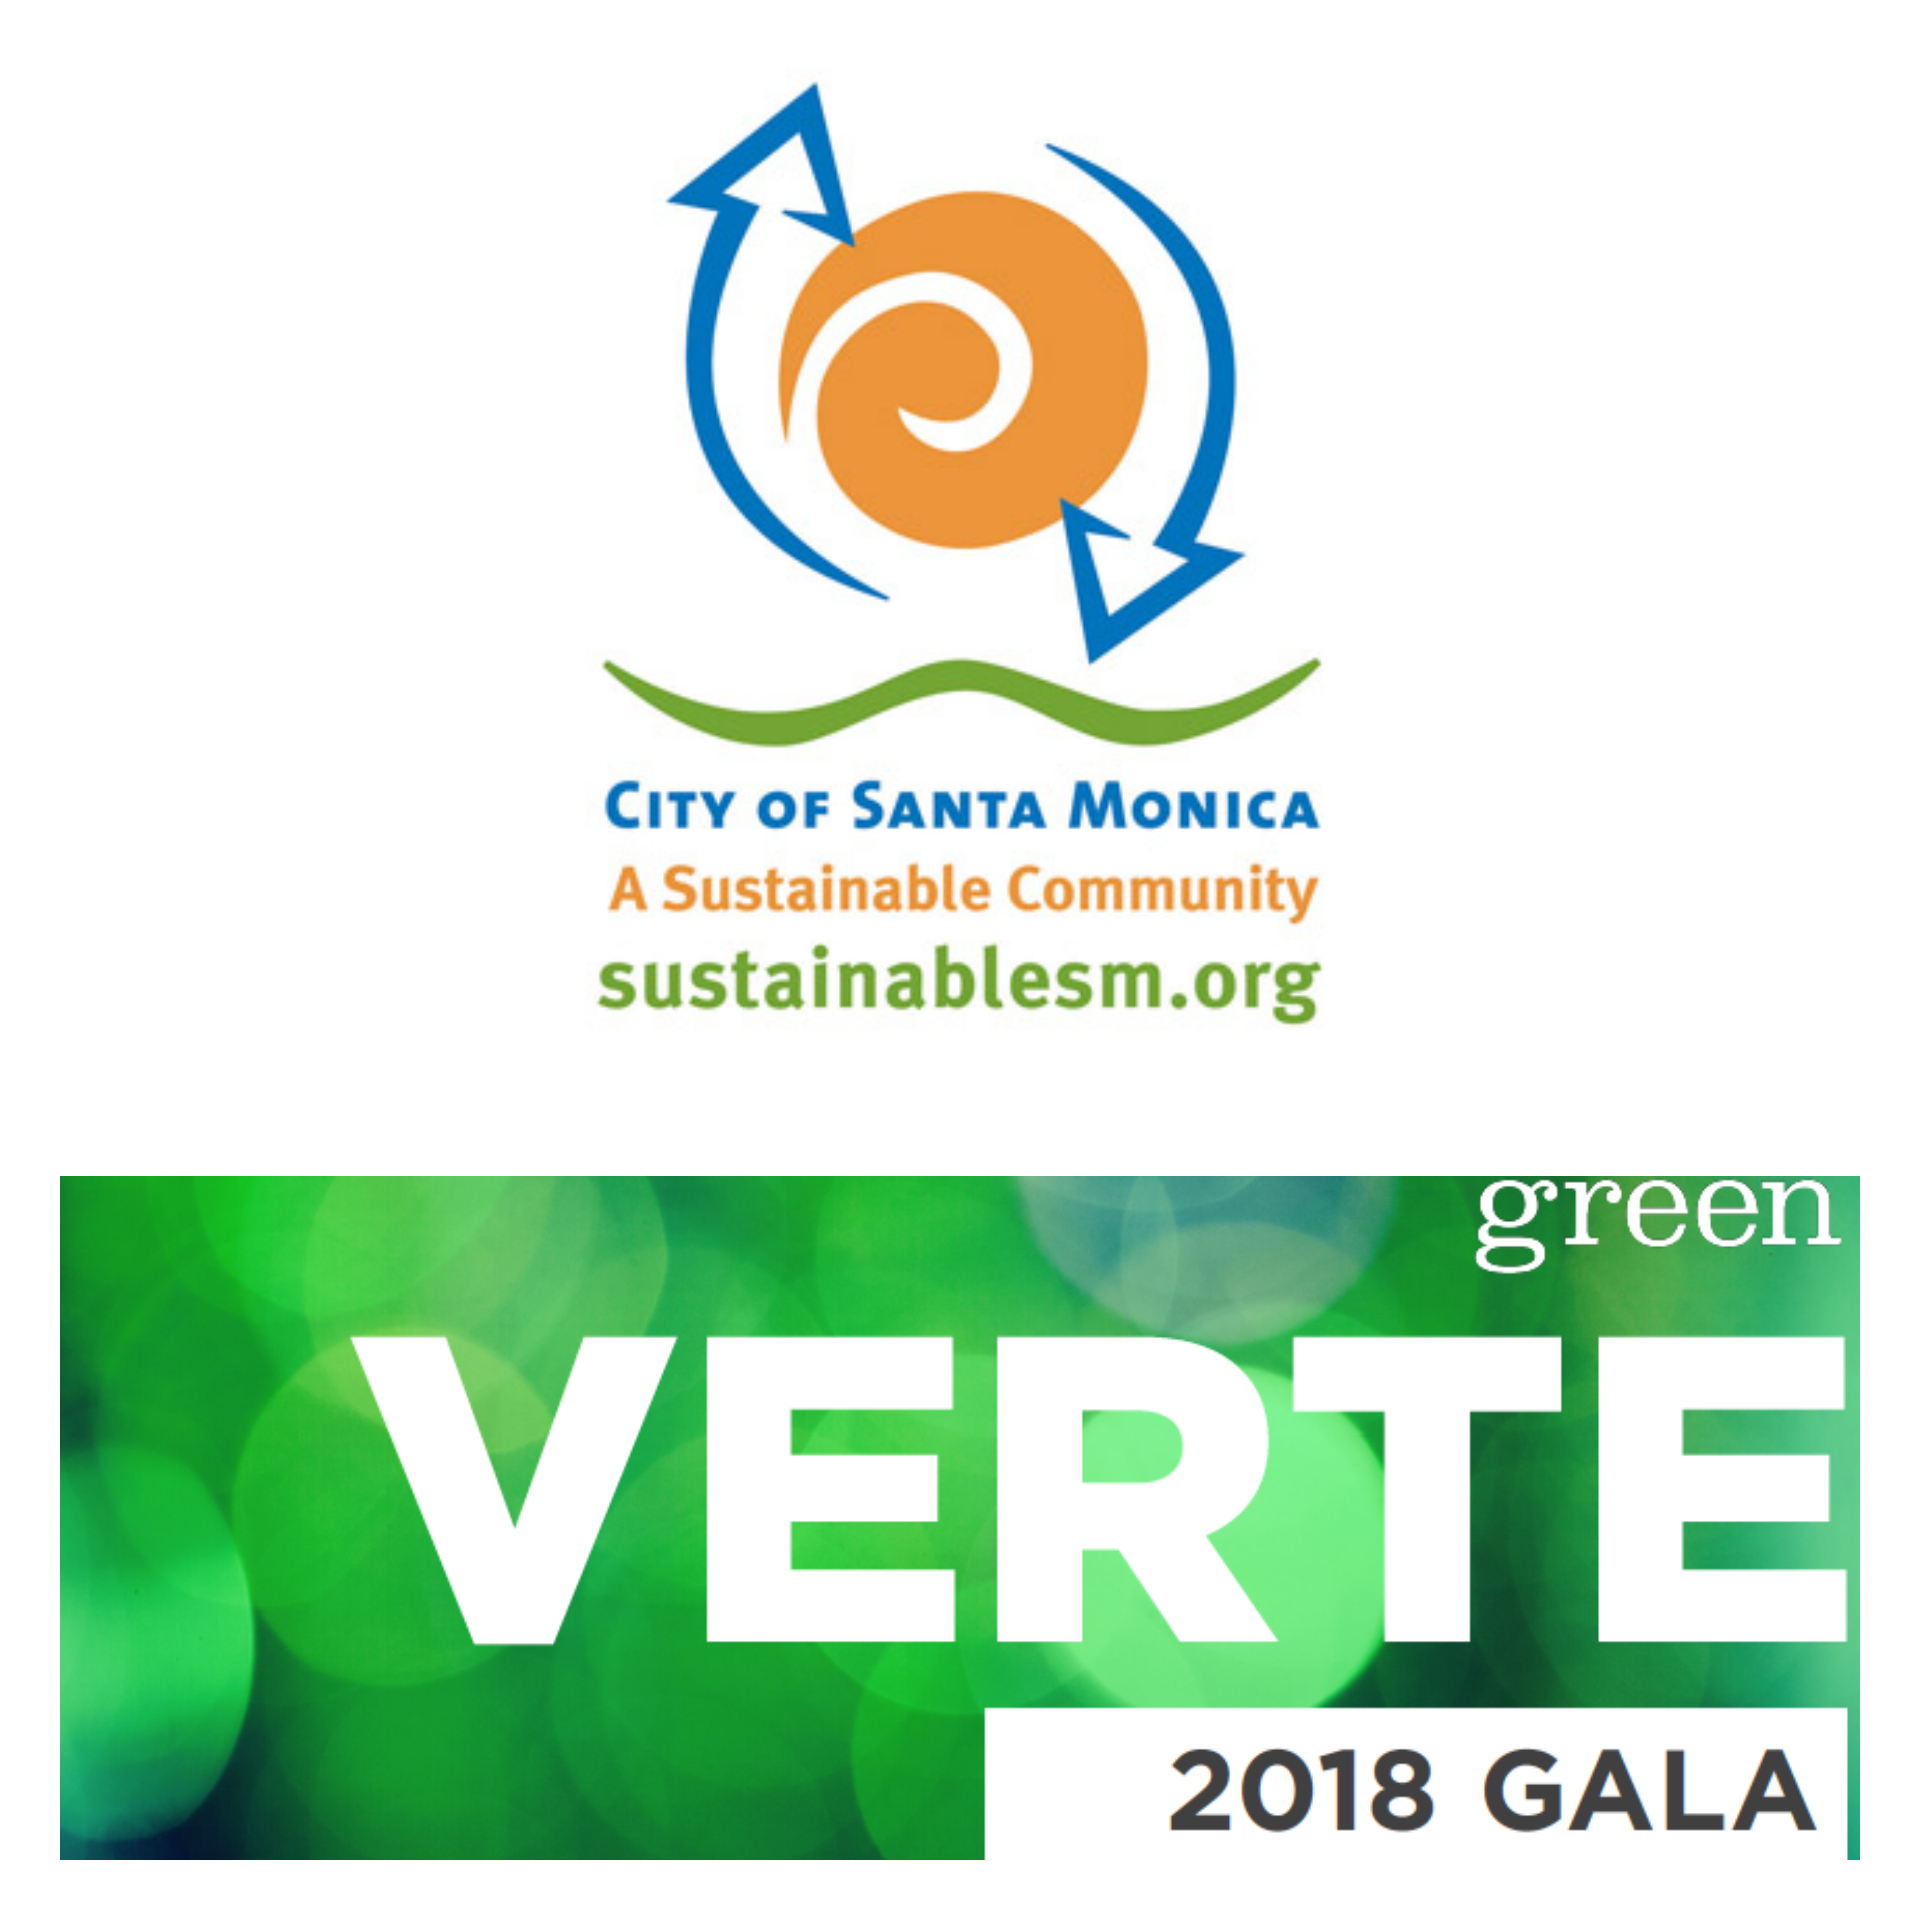 VERTE 2018 Gala Honors the City of Santa Monica